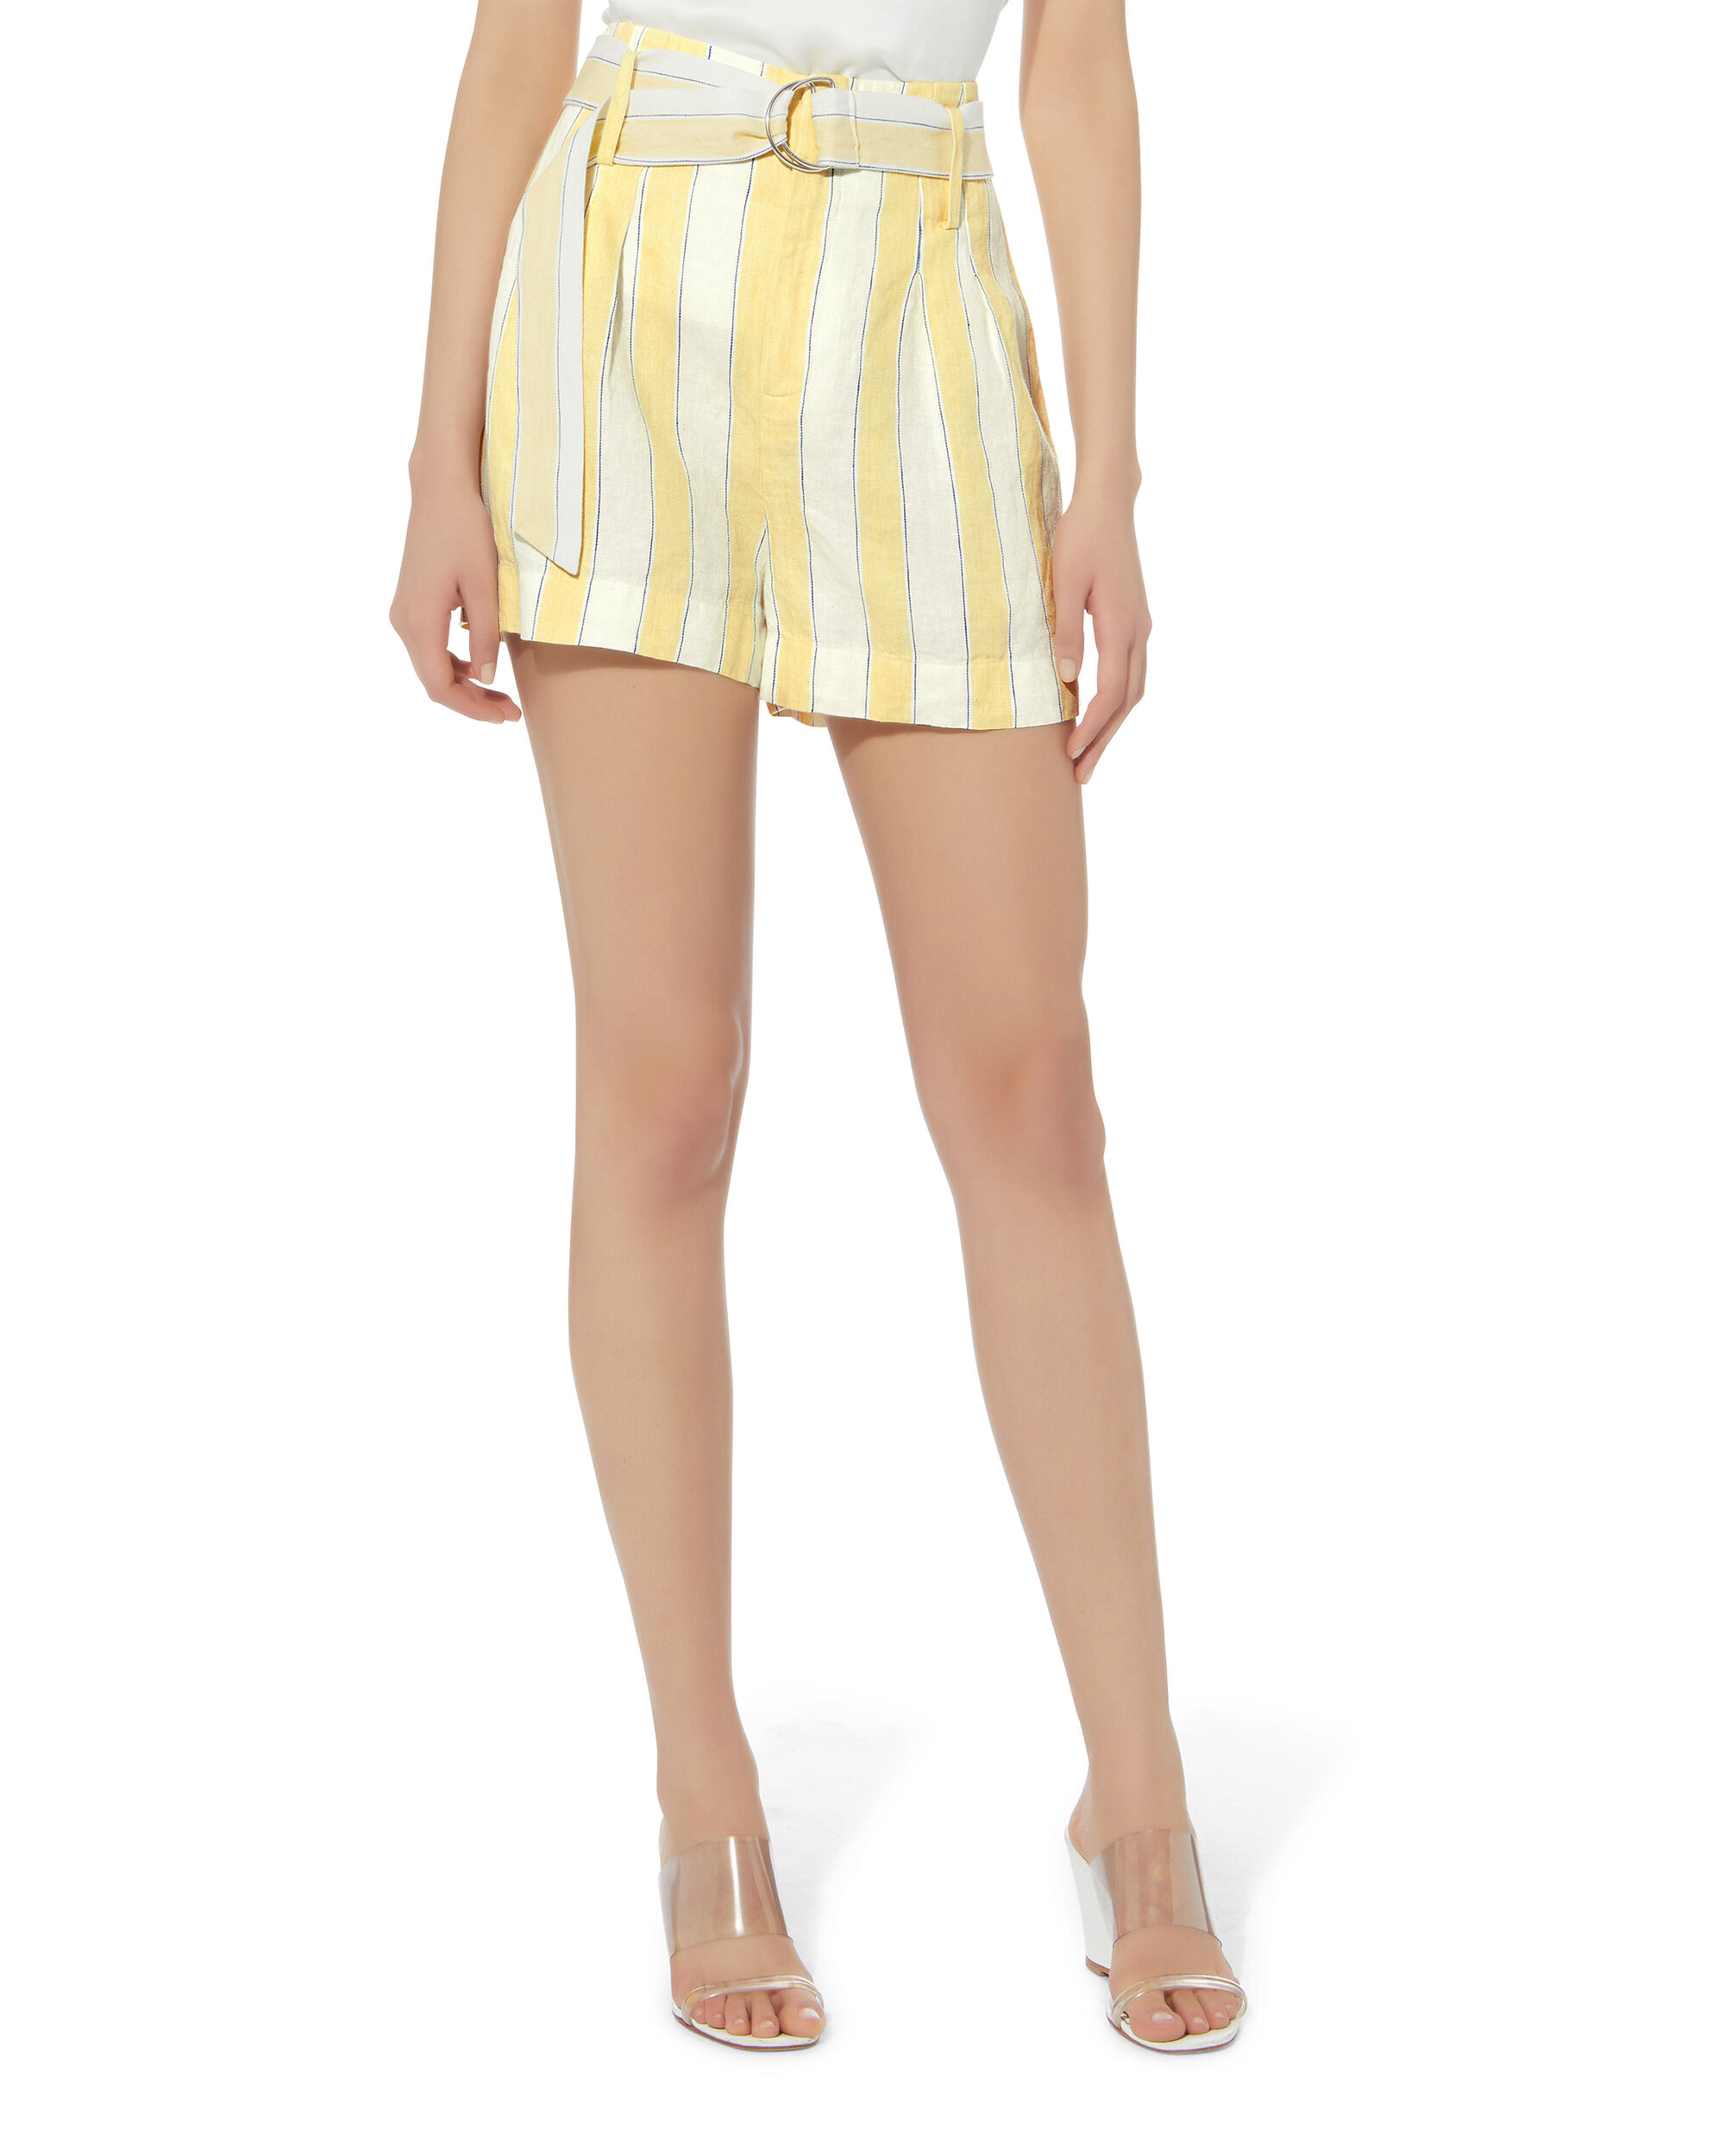 Linen Striped Shorts, IVORY/YELLOW, hi-res